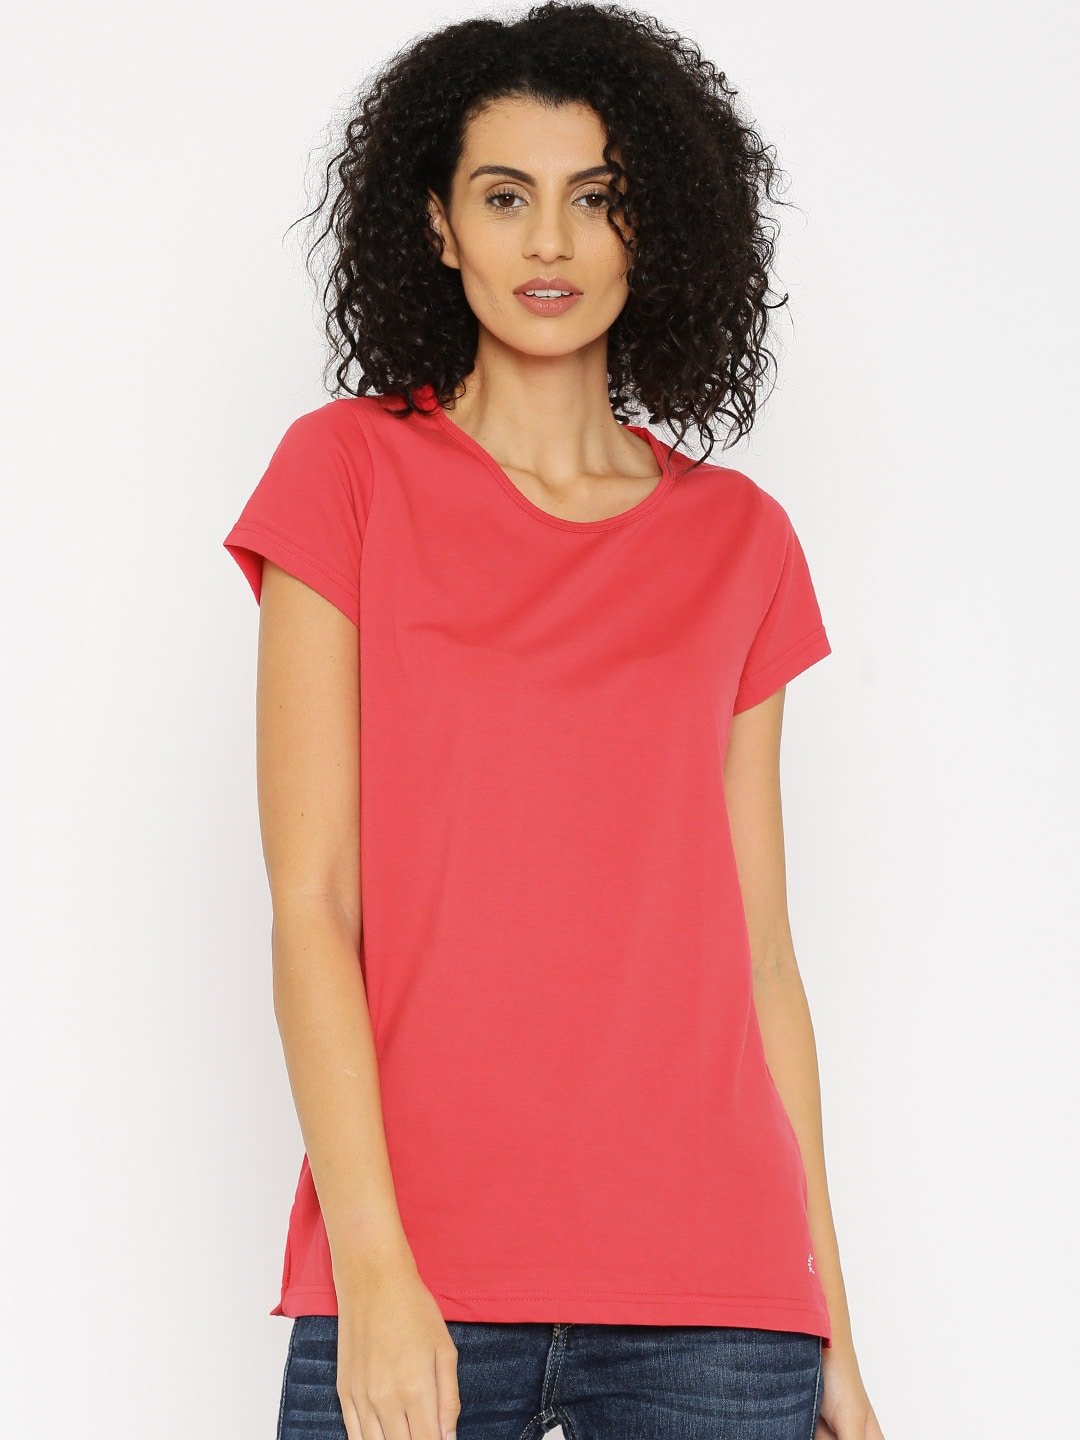 Kanvin Red Lounge Top KAW16280C image